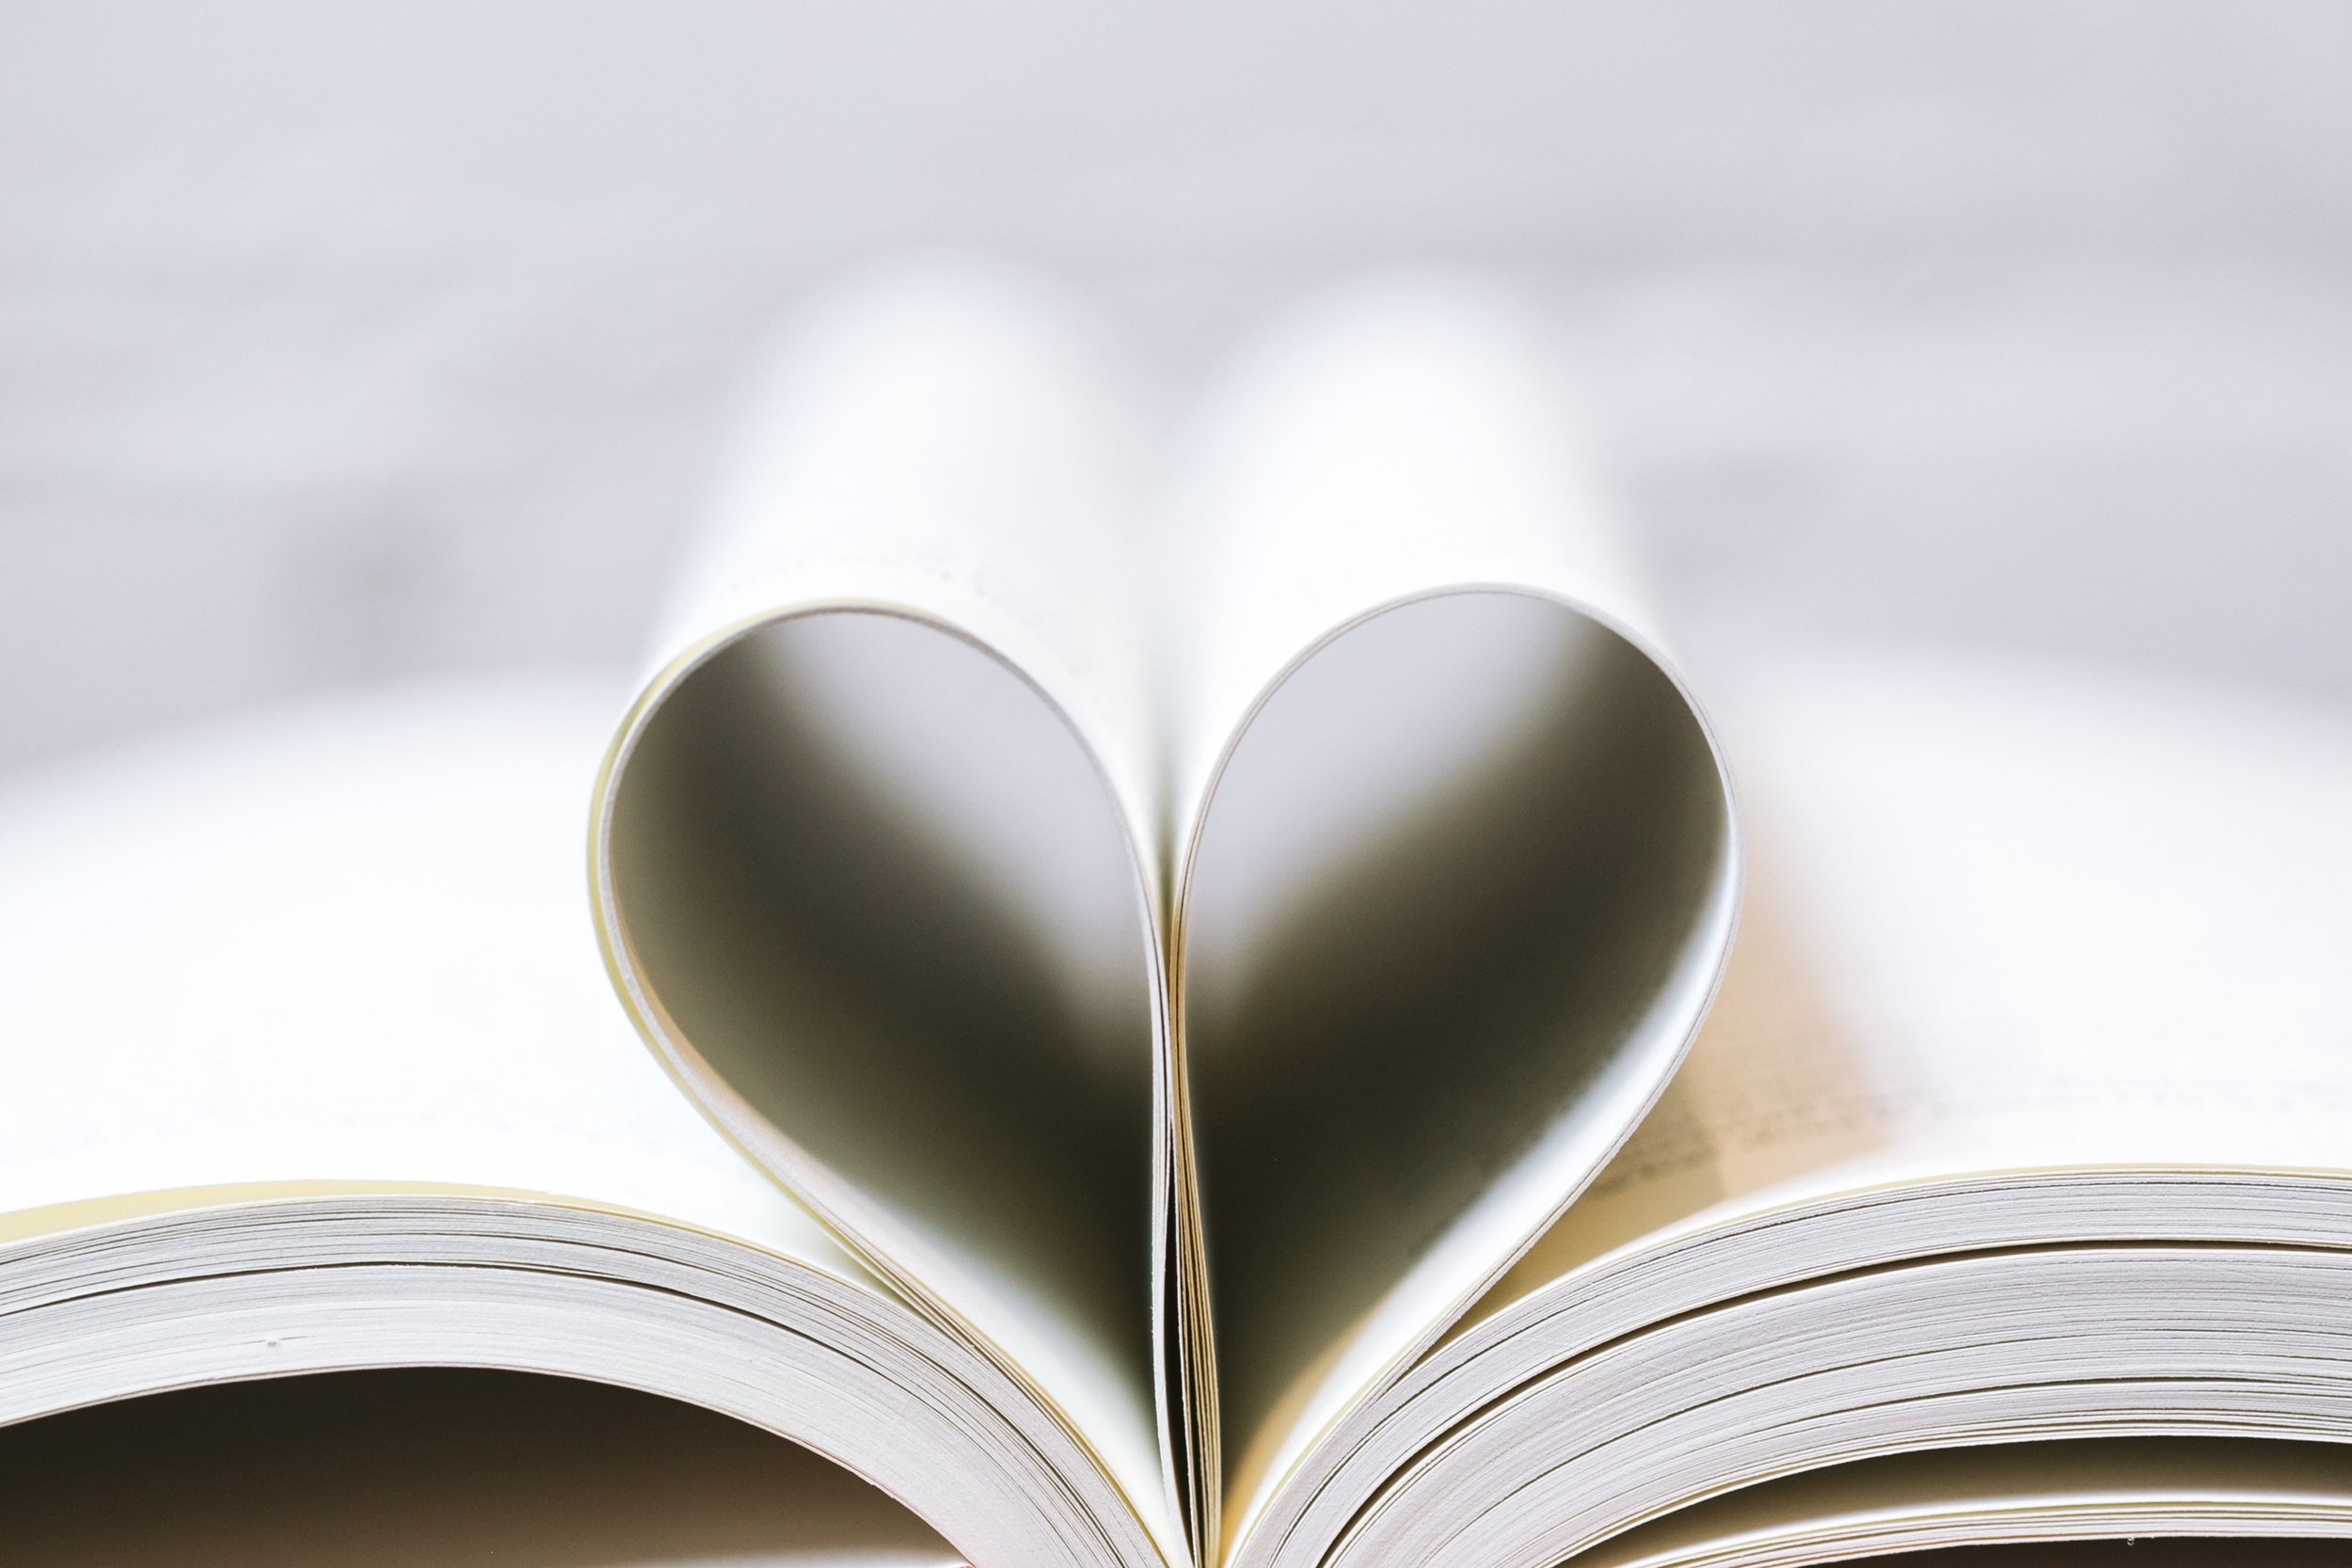 book-pages-as-a-heart.jpg